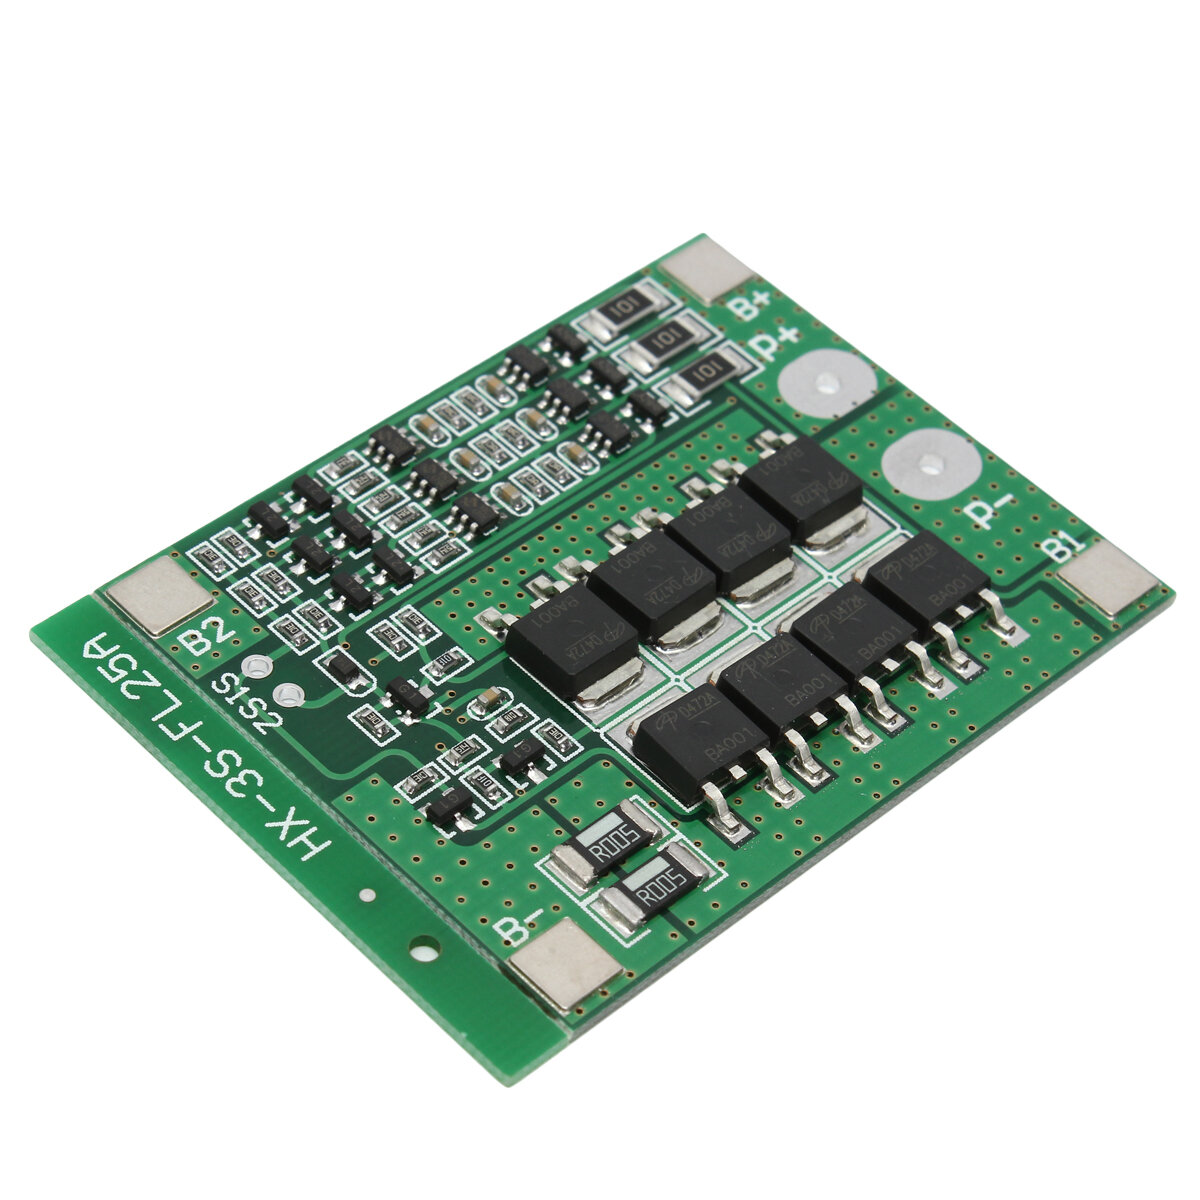 Back To Search Resultsconsumer Electronics Batteries 3s 40a 11.1v 12.6v 18650 Lithium Battery Protection Board Standard High Quality Cheapest Price From Our Site